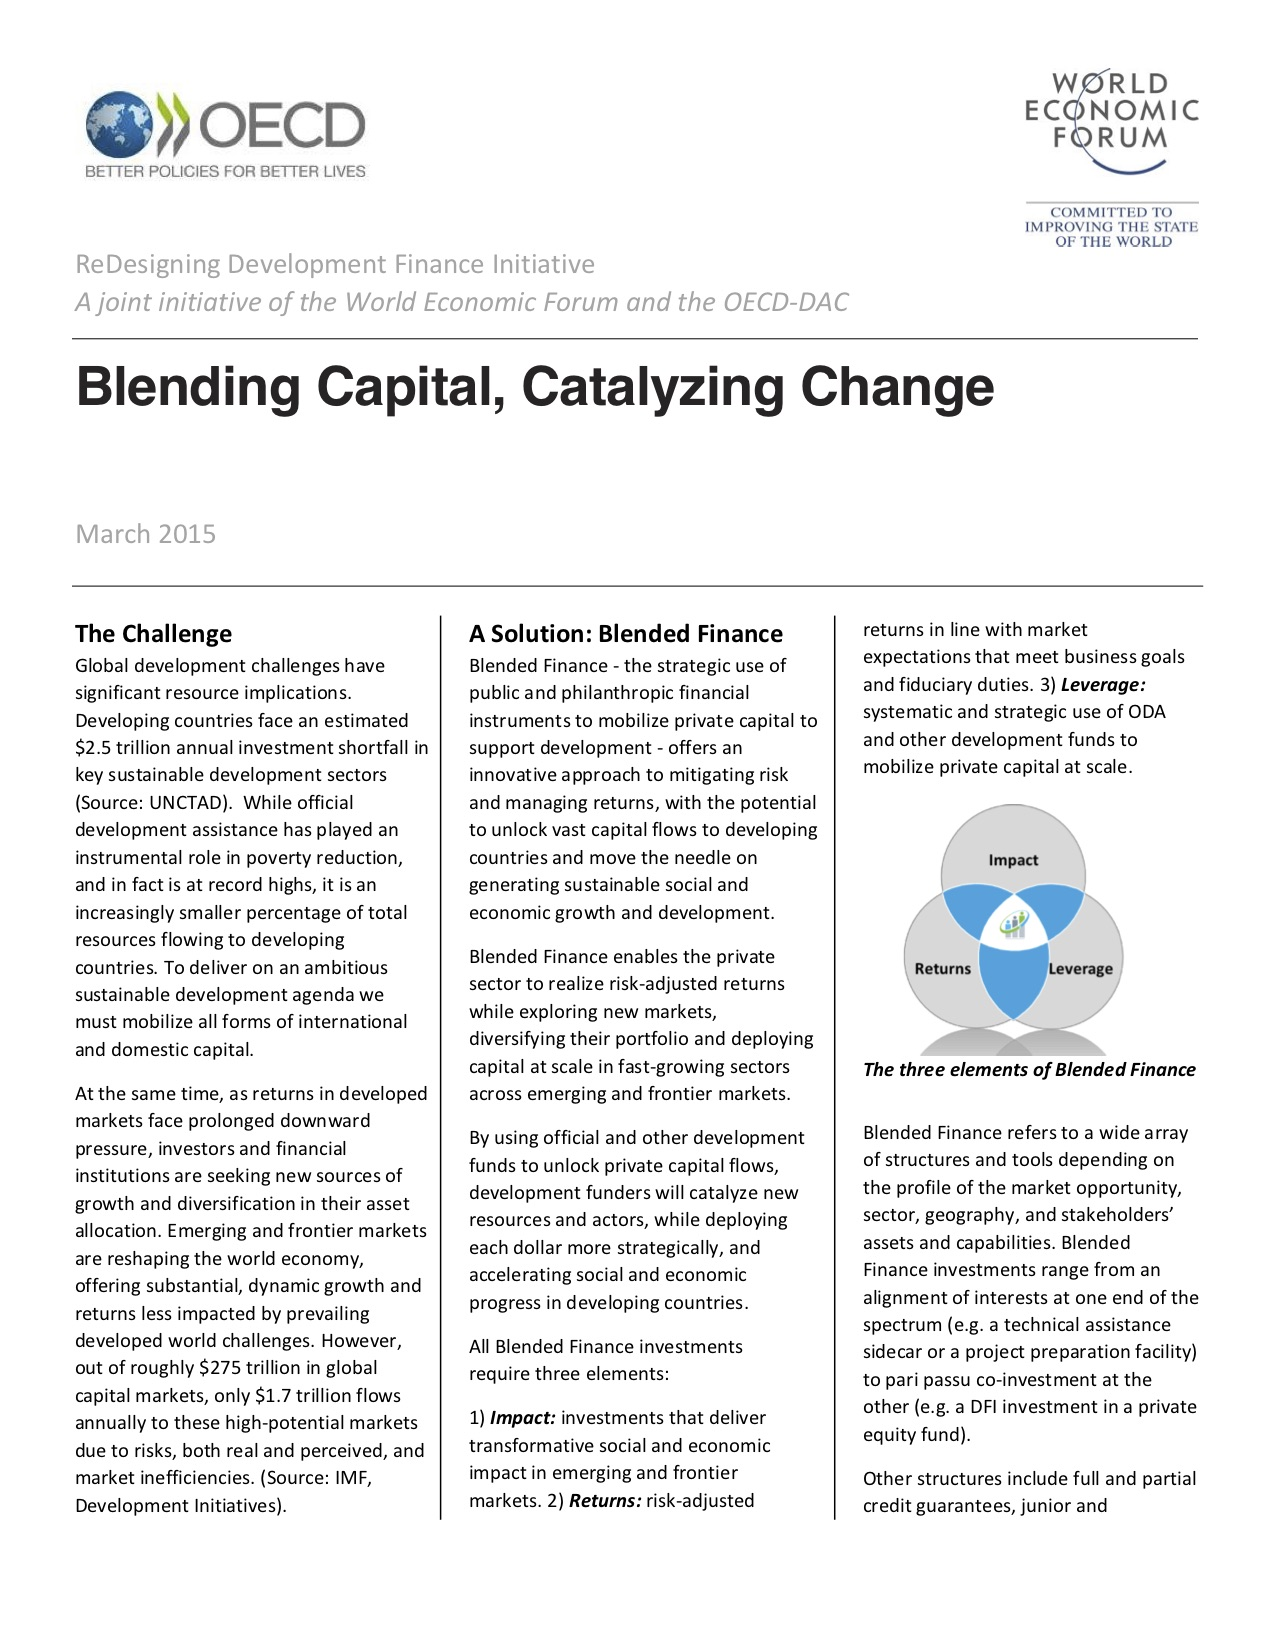 Blending Capital, Catalyzing Change